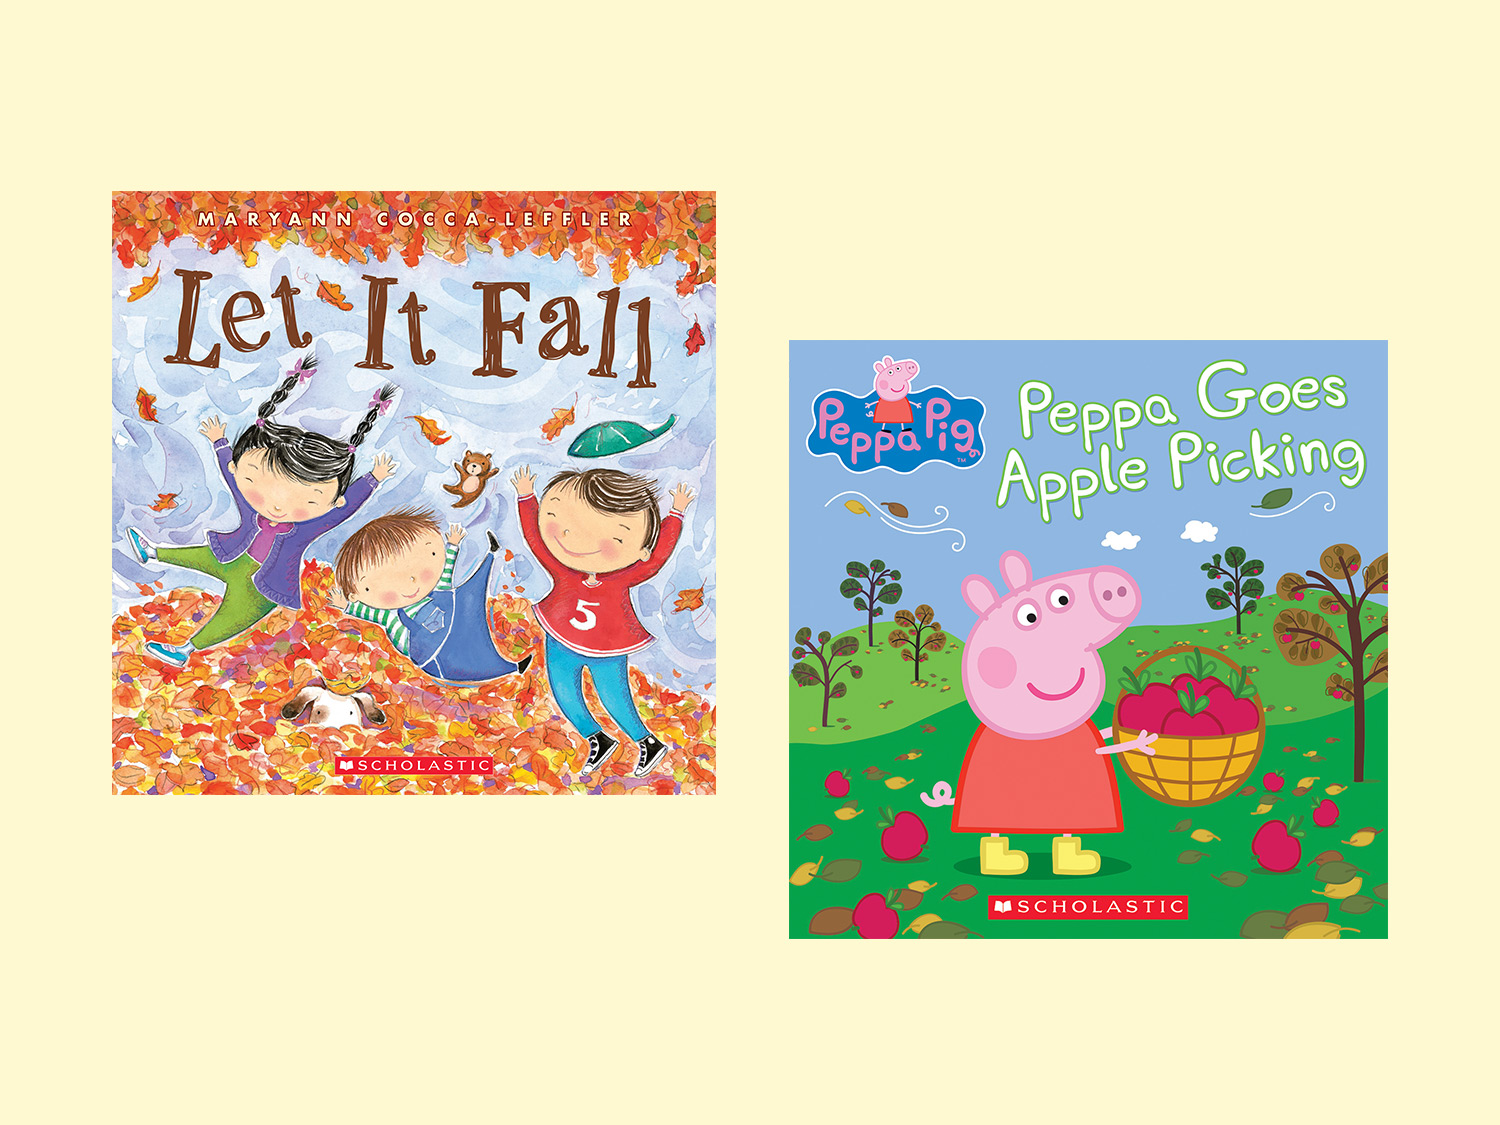 fall scholastic parents books stories lists reading fun themes